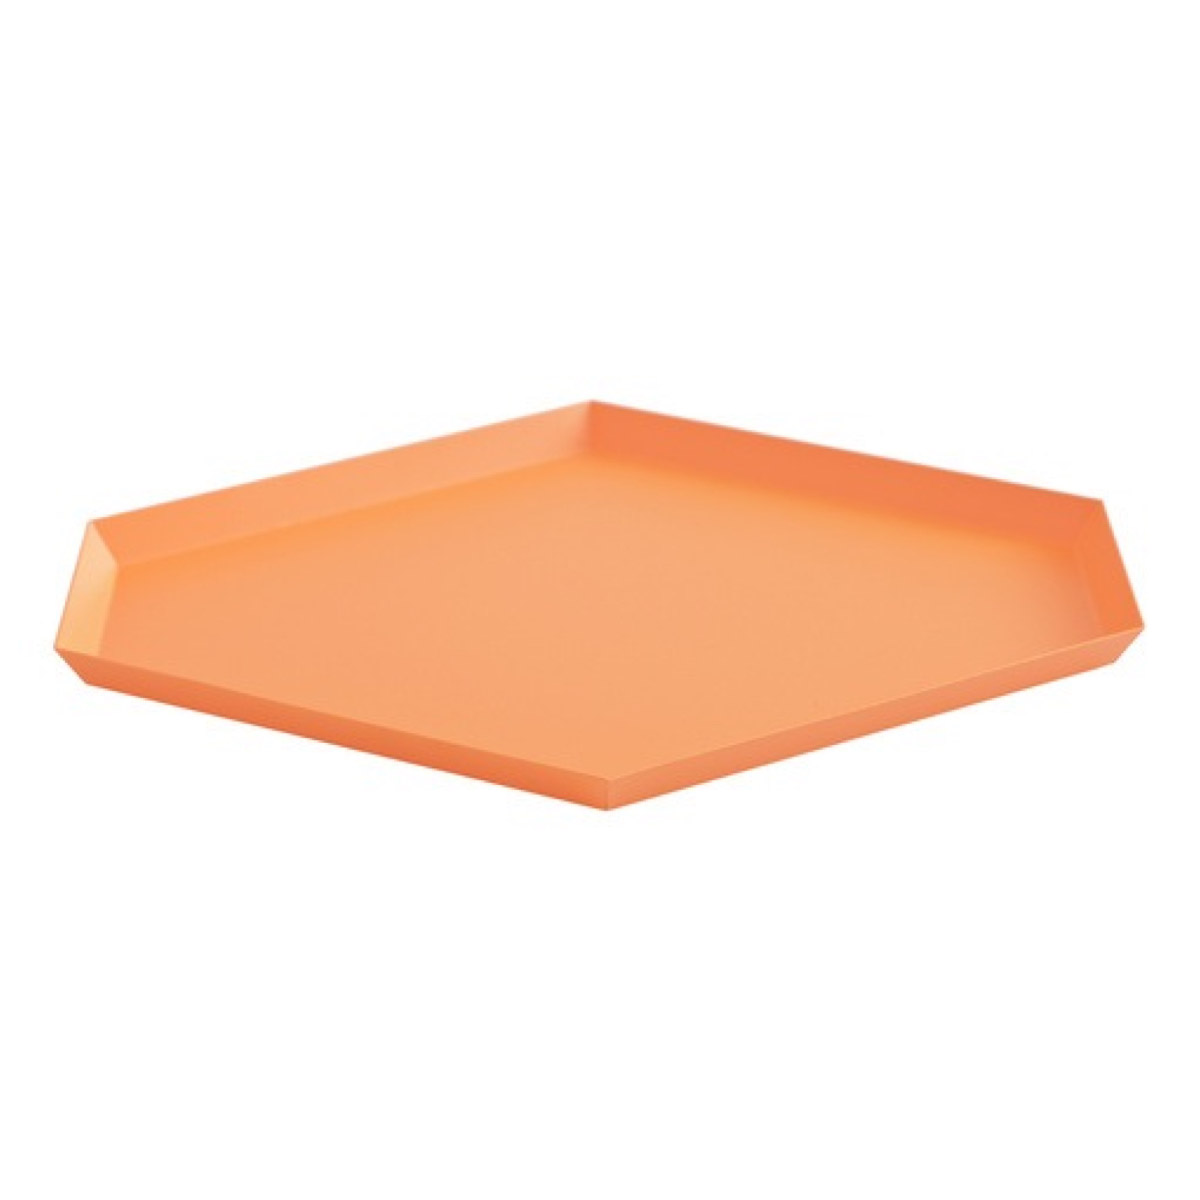 Kaleido large tray